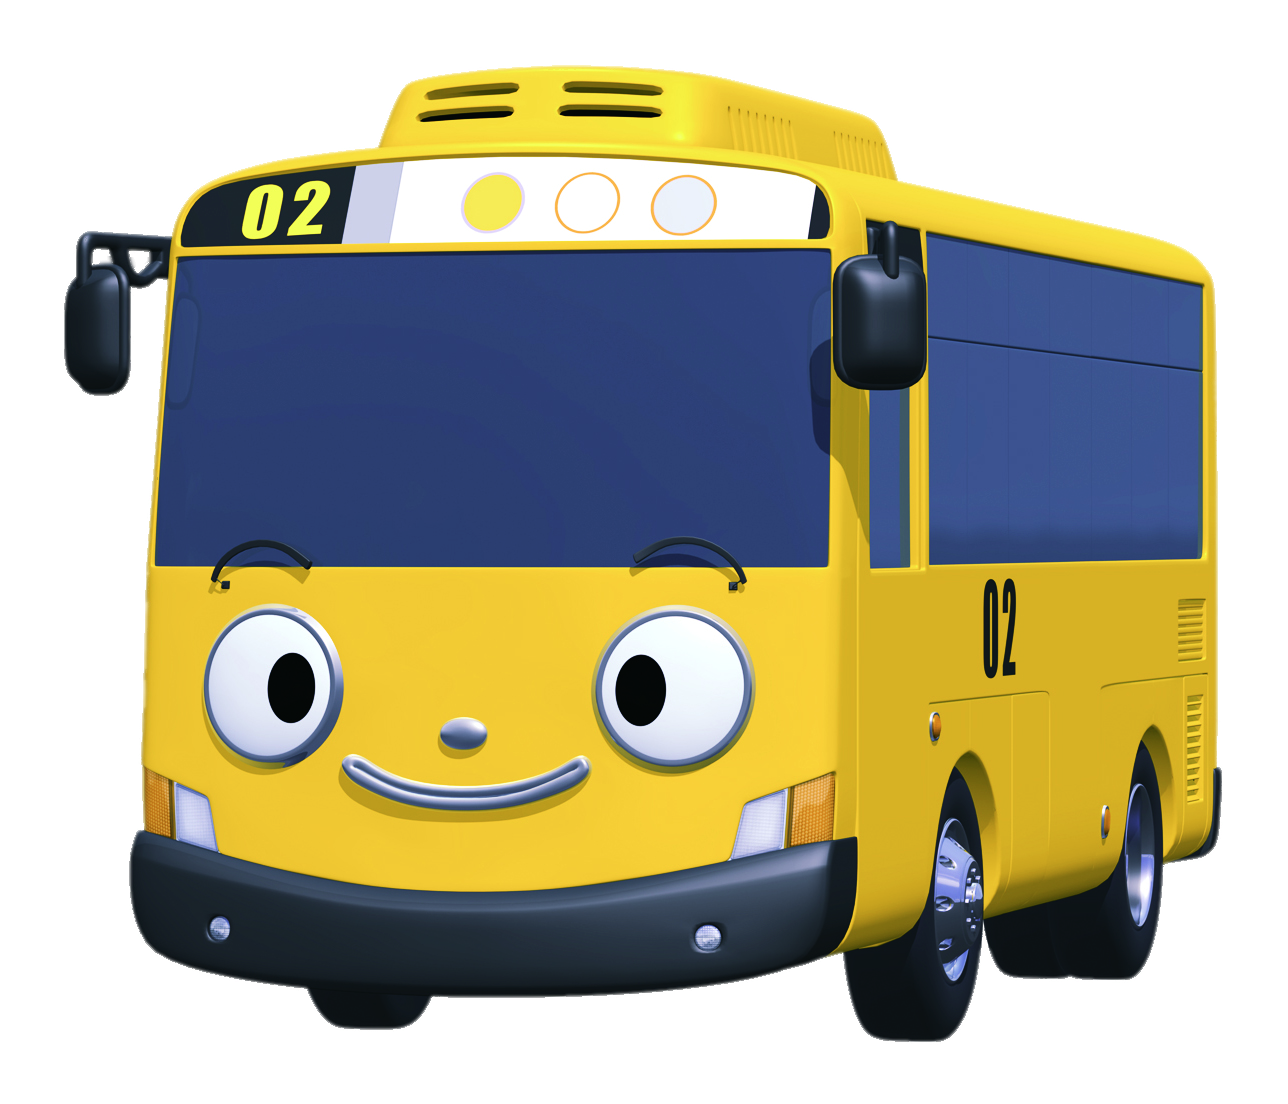 We Have Found A Great Tayo The Little Bus Character Lani Png Image For You Check It Out Tayo The Little Bus Little Bus Bus Cartoon